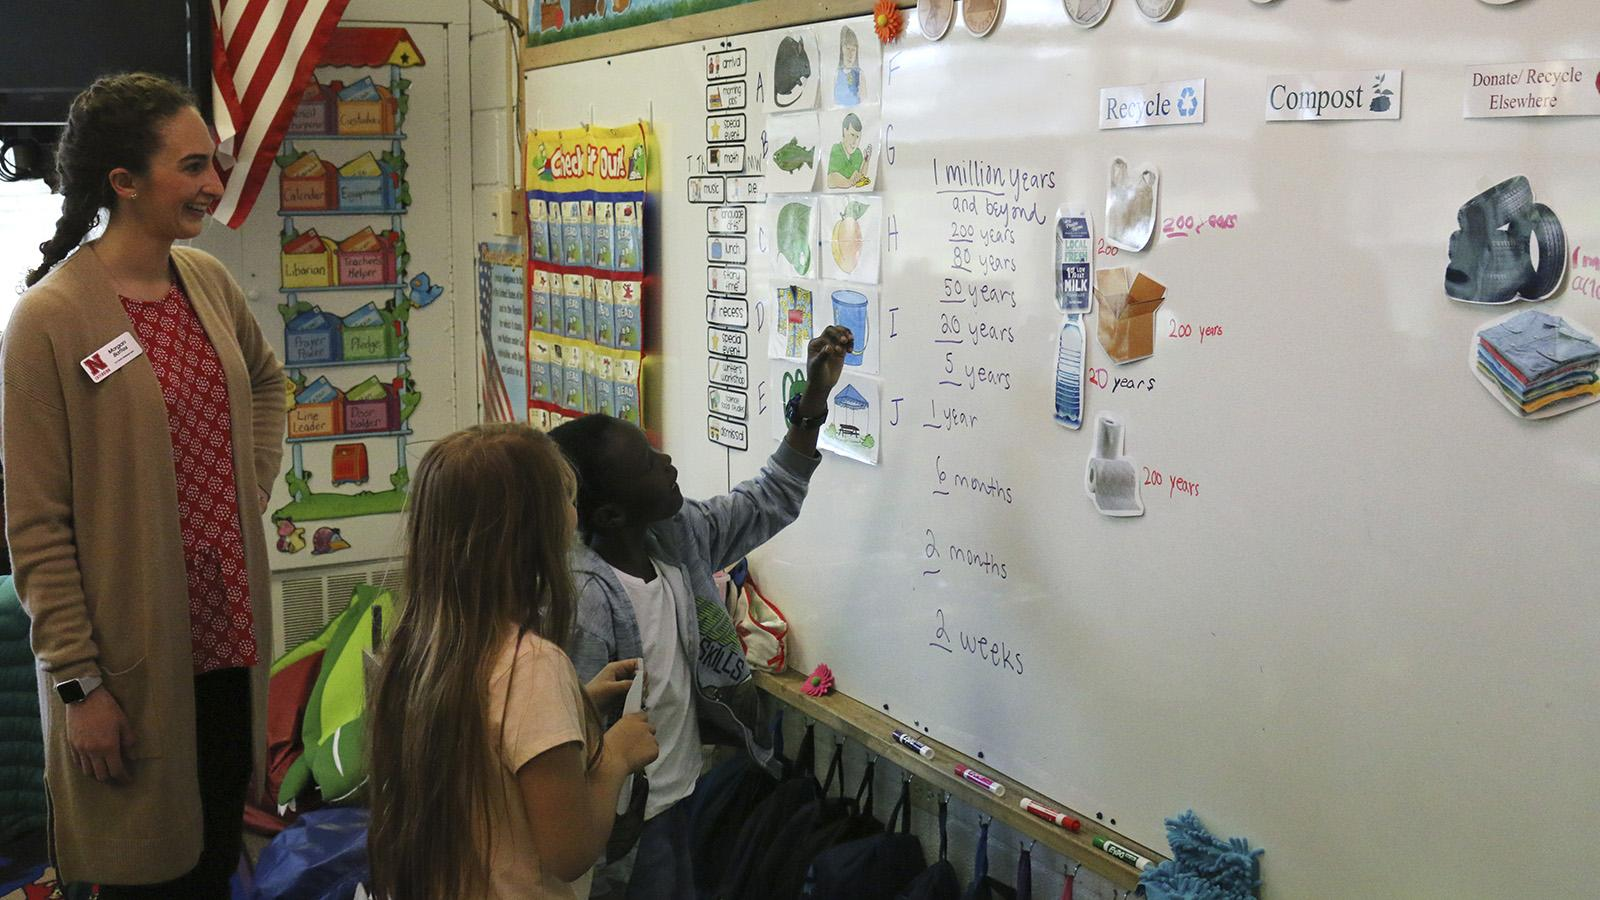 Two students with recycling flash cards at a white board